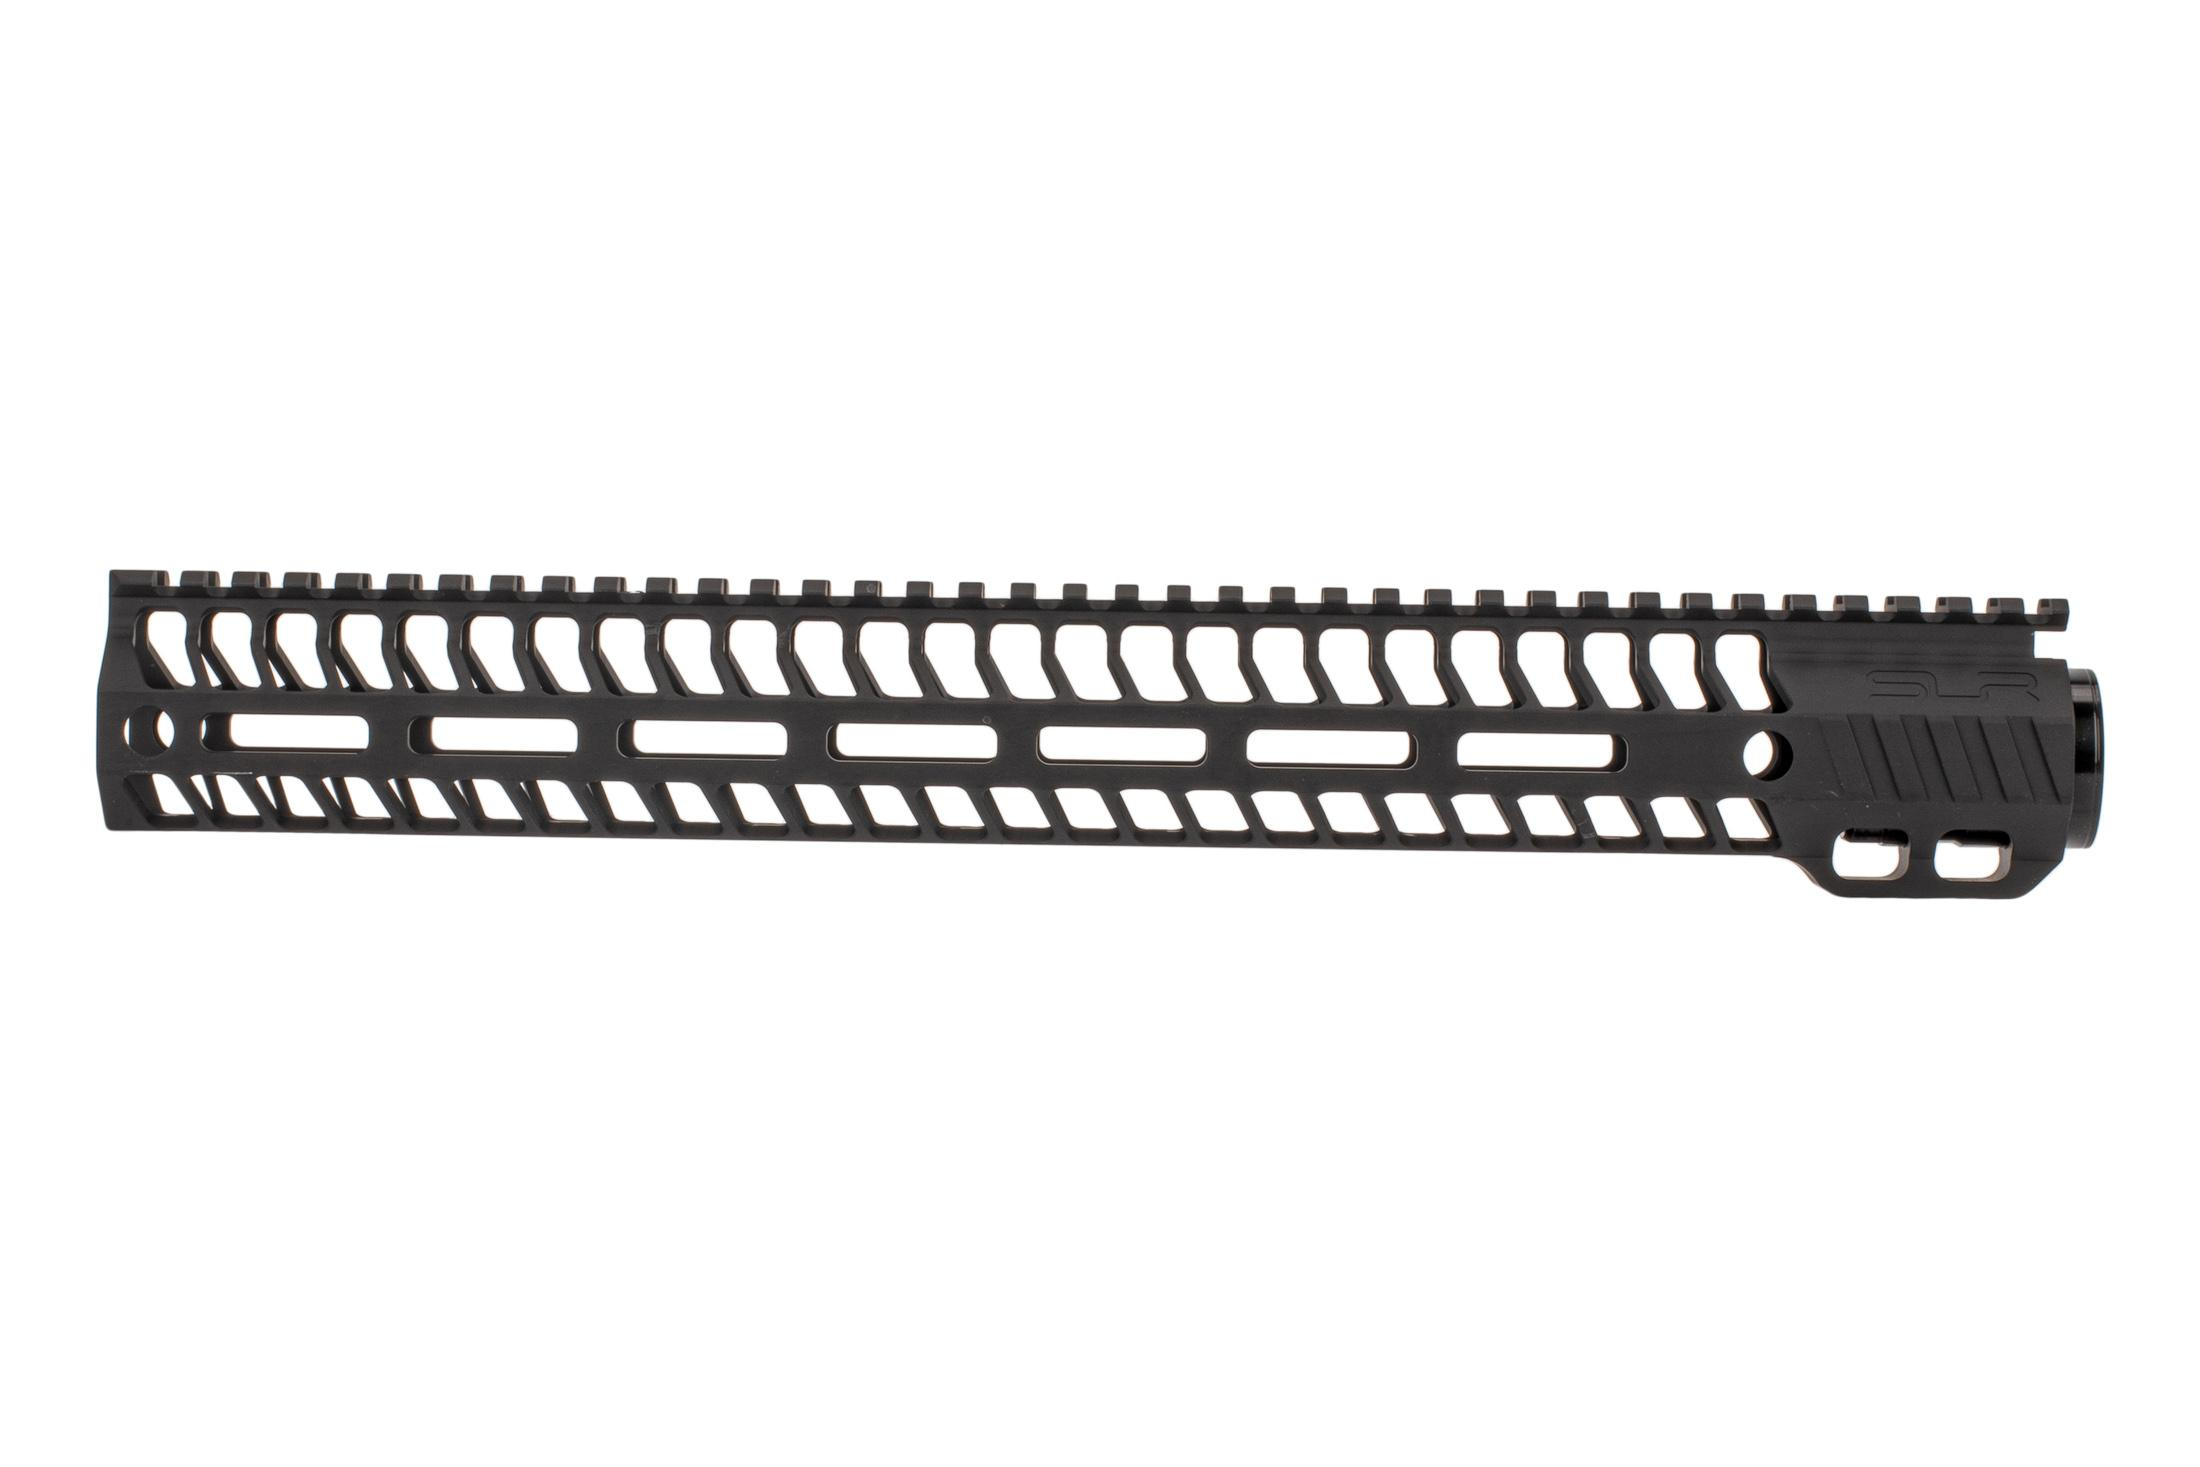 SLR Rifleworks M-LOK HELIX rail is 14.87 for AR15 with black anodized finish and full length top rail